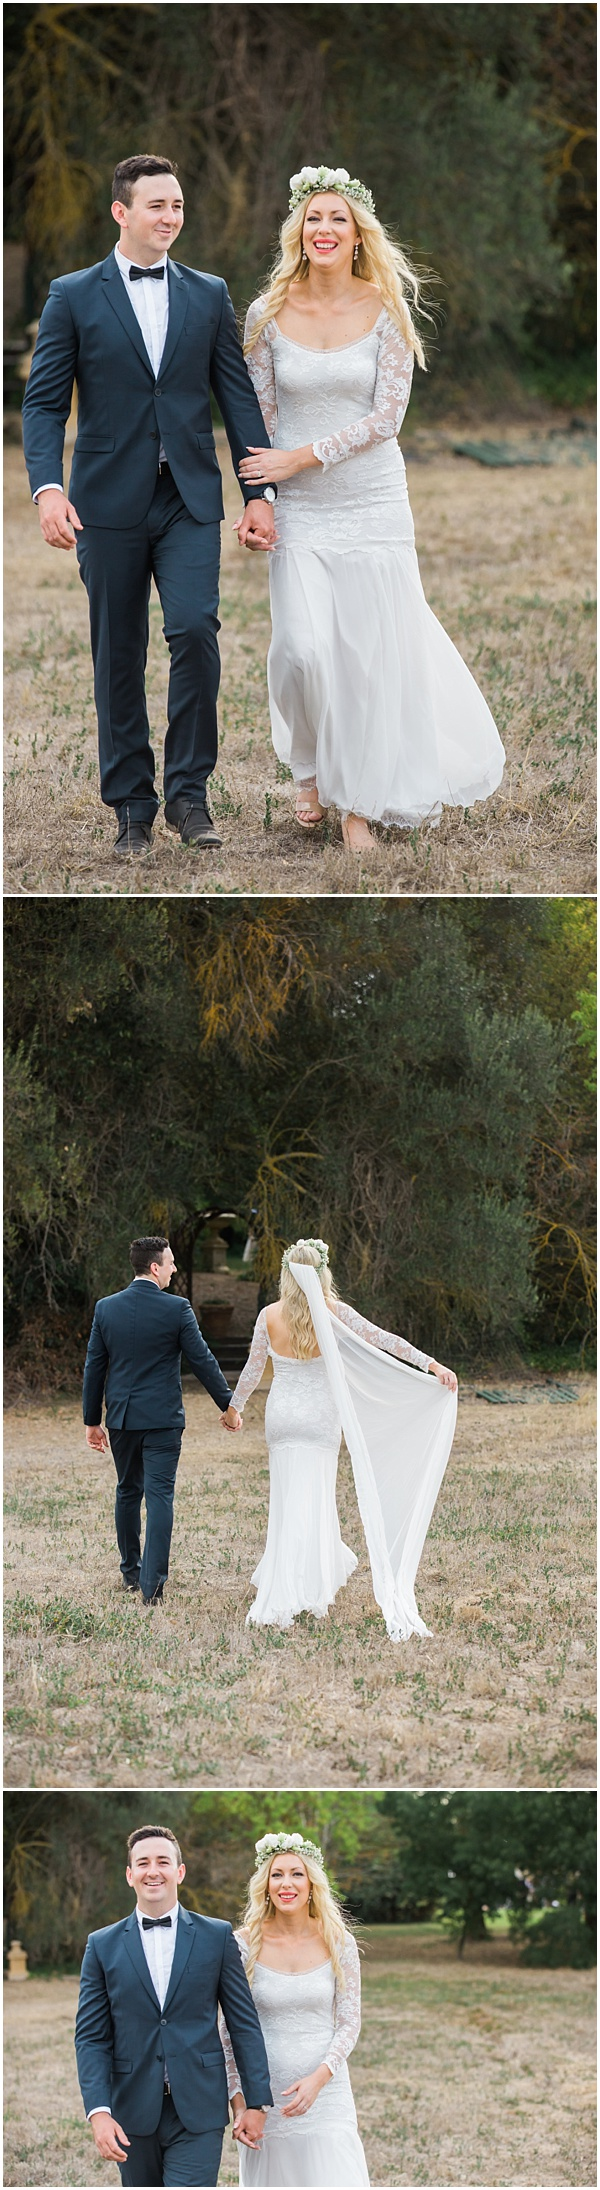 Bendigo Echuca Macedon Elegant Country Wedding Photography_0017